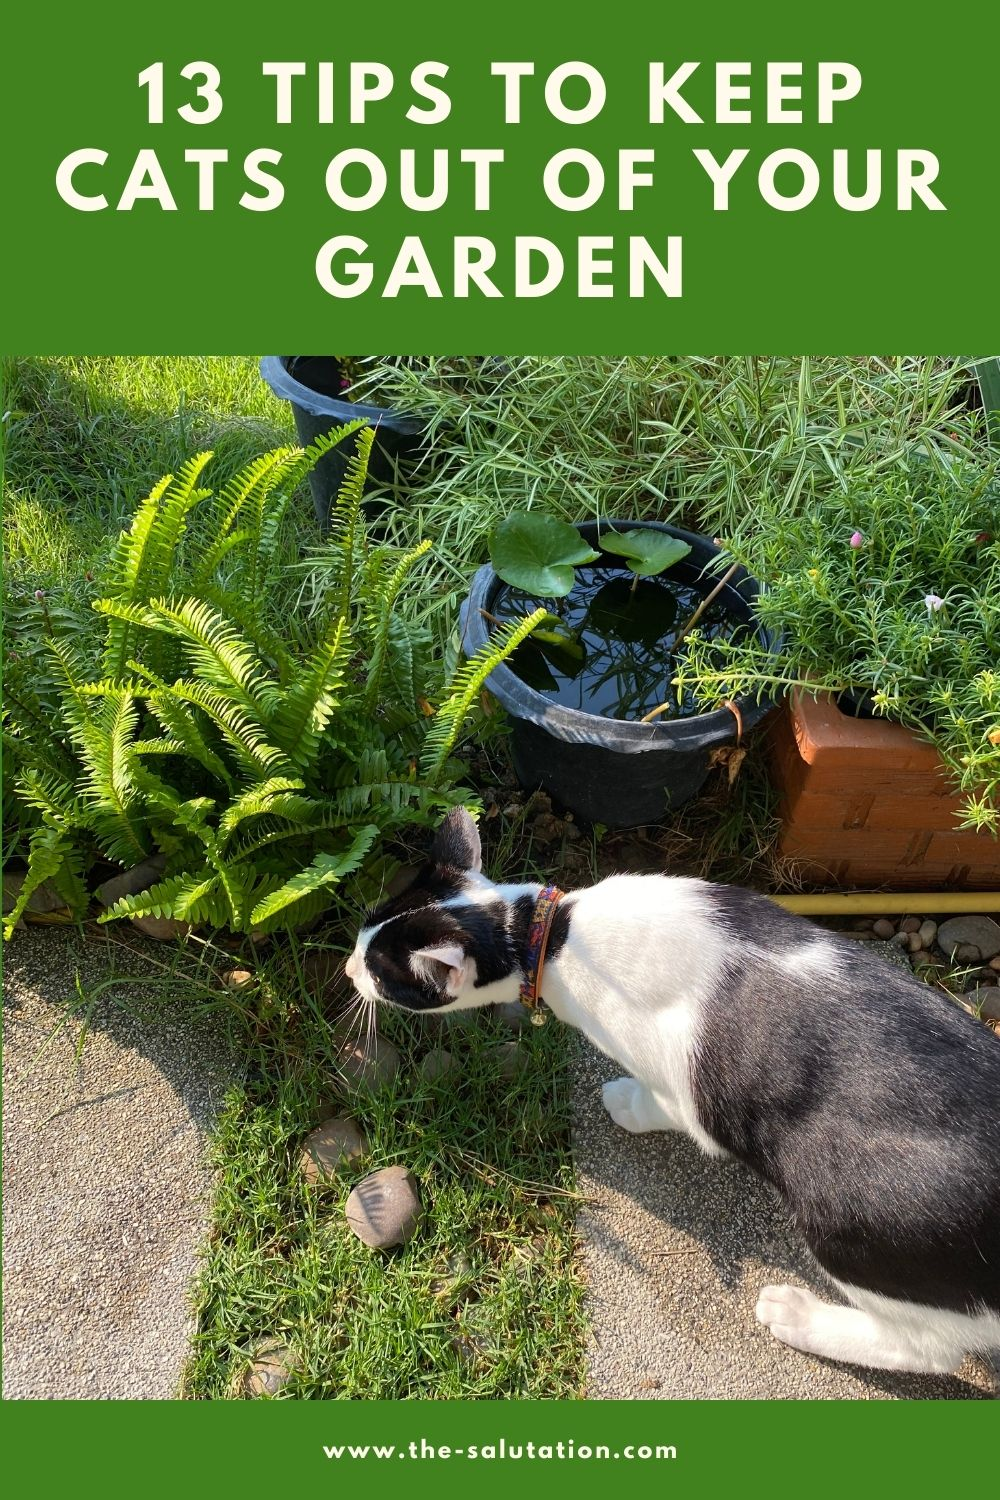 13 Tips to Keep Cats Out of Your Garden 2